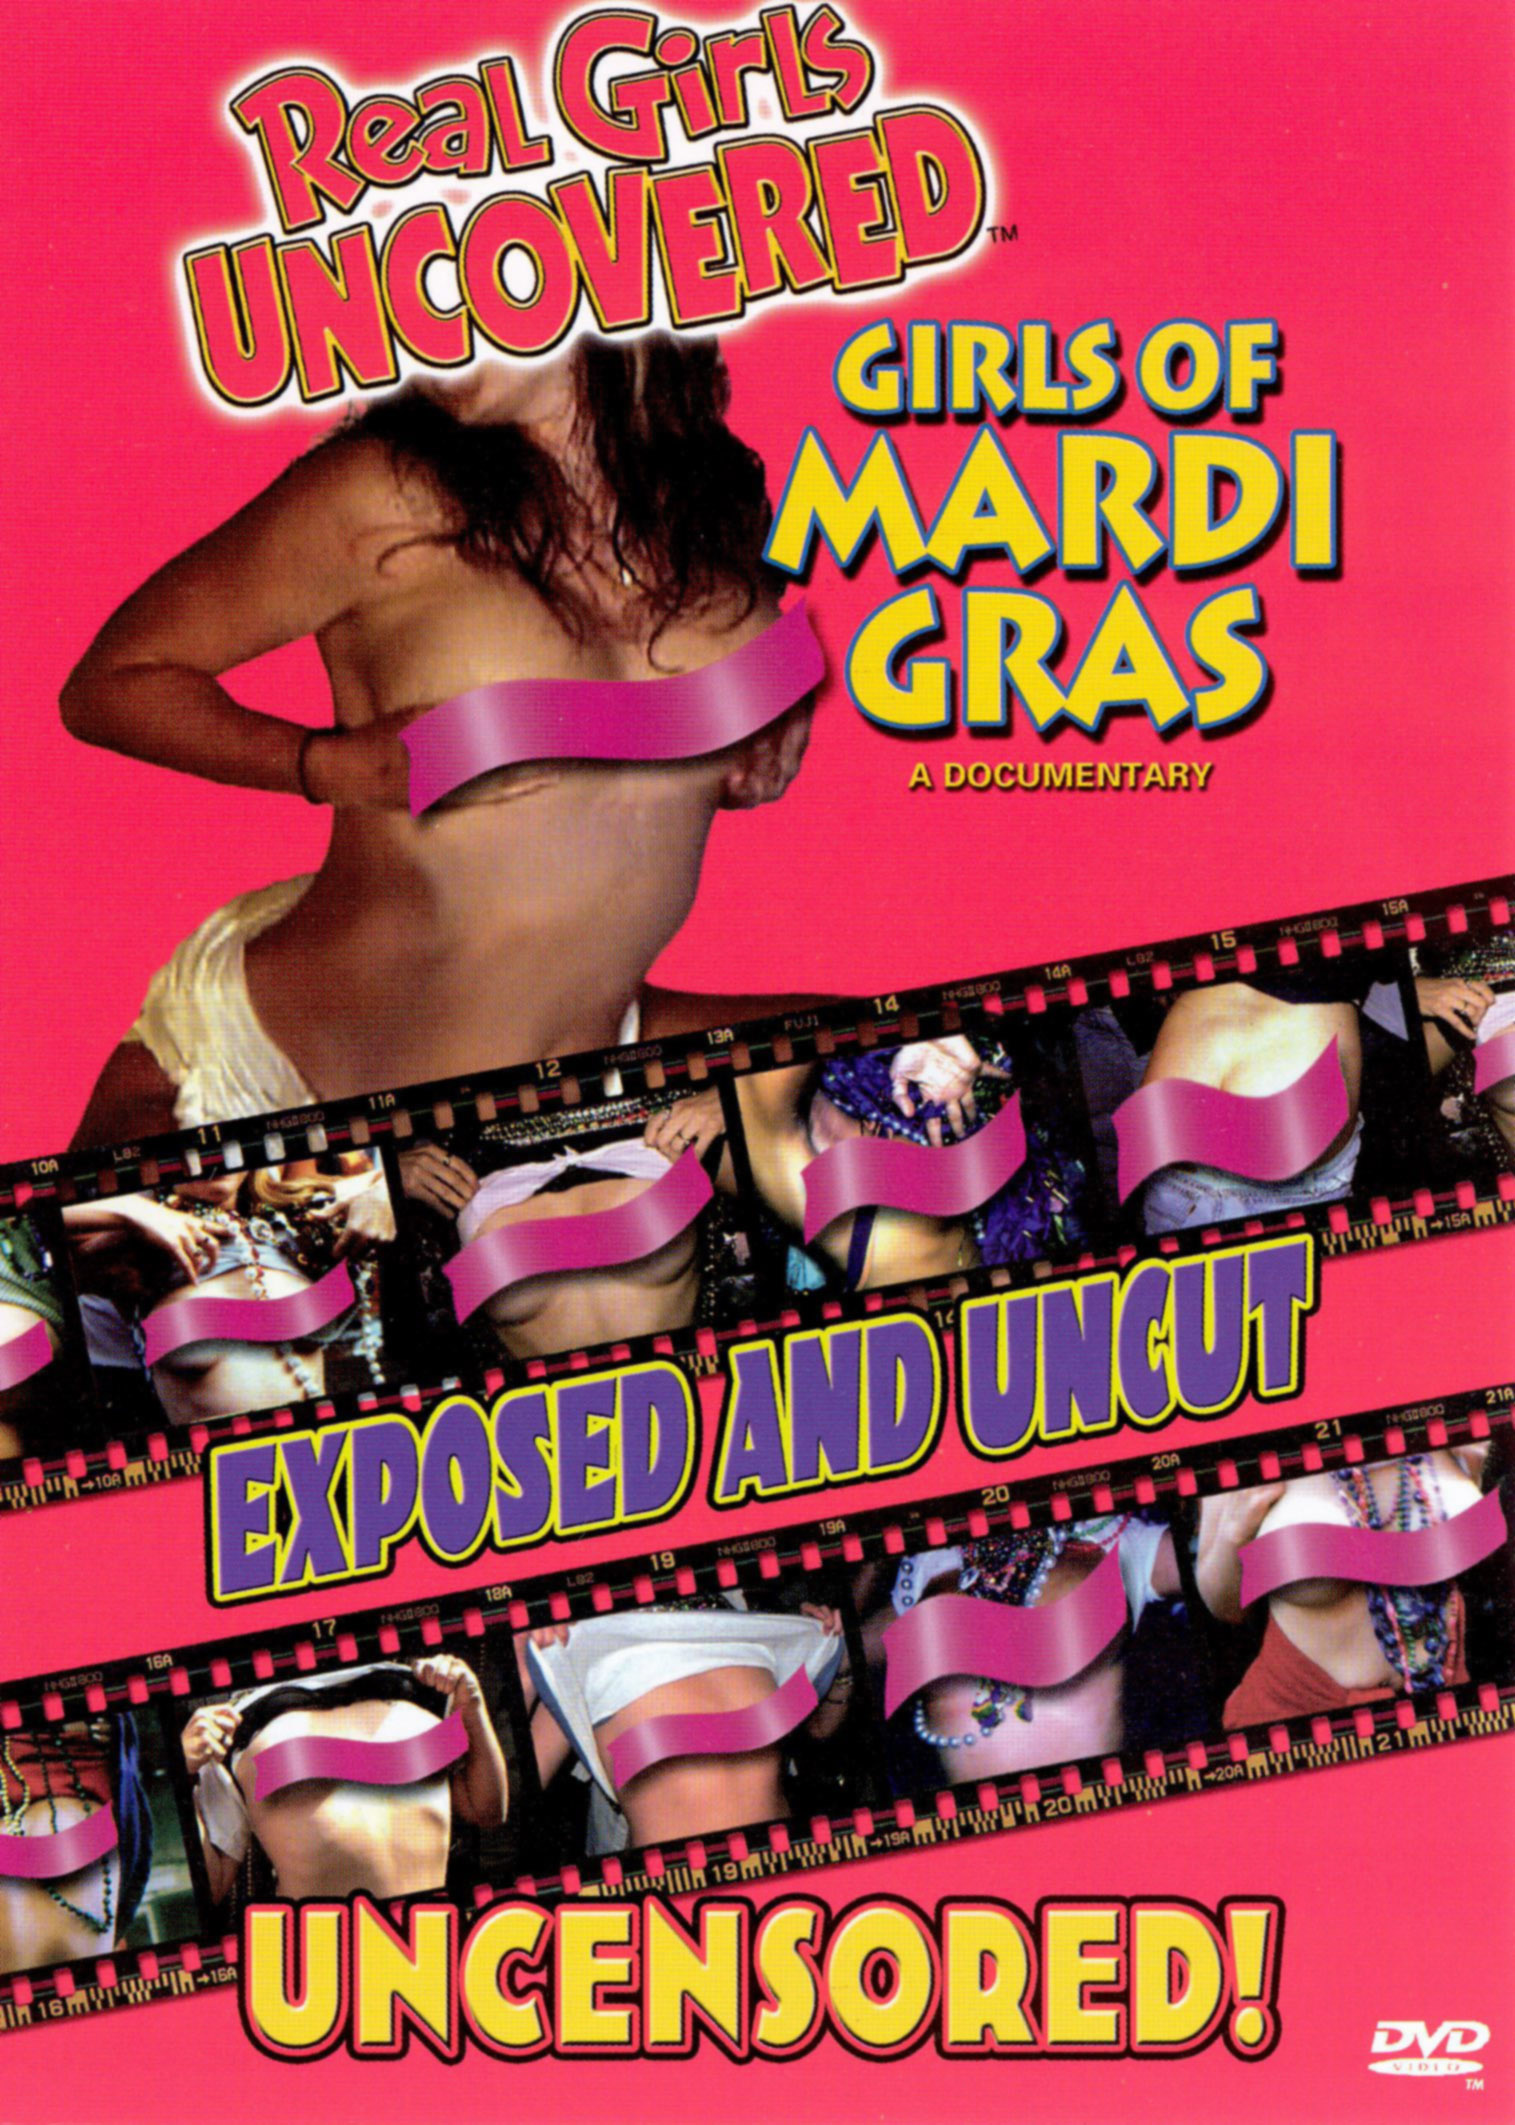 Real Girls Uncovered: Girls of Mardi Gras